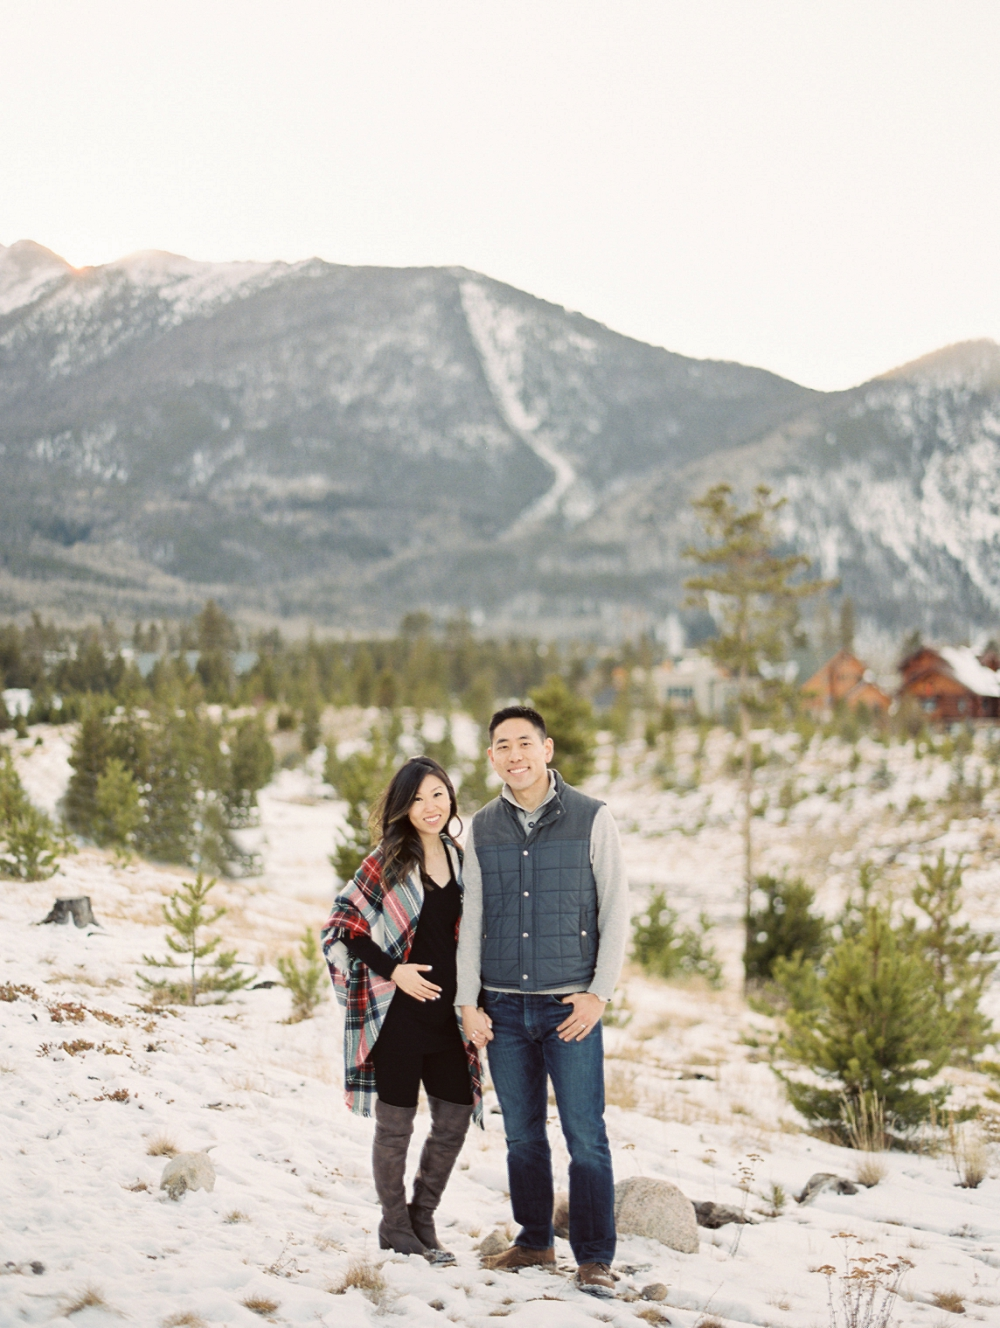 Dani-Cowan-Photography-Snowy-Colorado-Mountain-Maternity-Photoshoot12_WEB